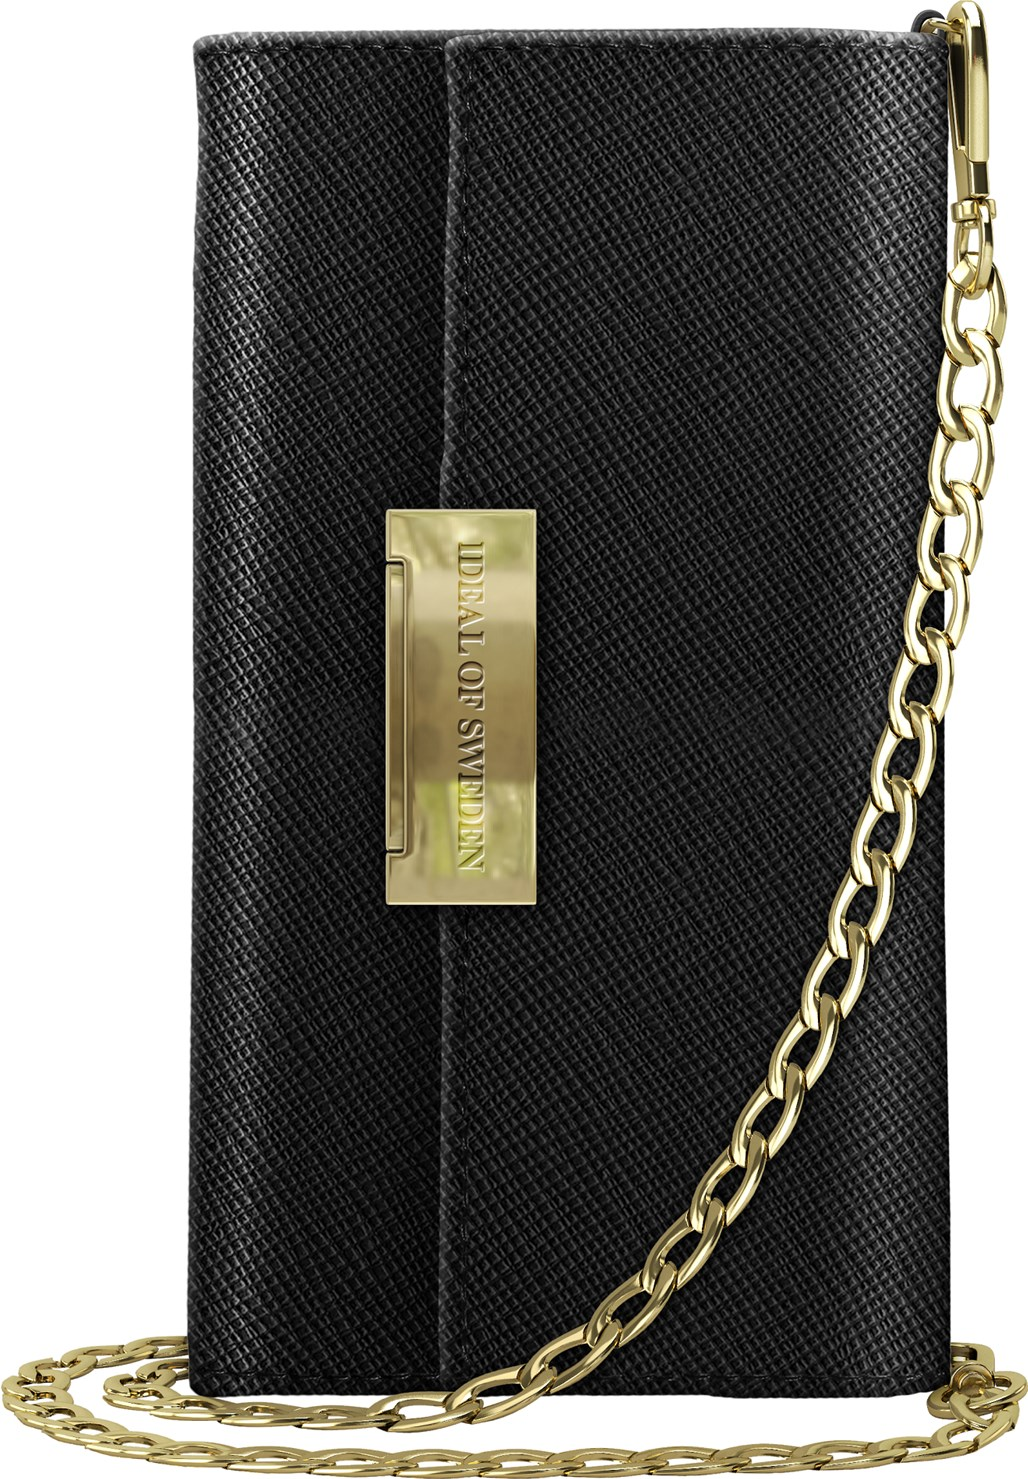 iDeal of Sweden Ideal Kensington Cross Body Clutch Iphone Xr Black